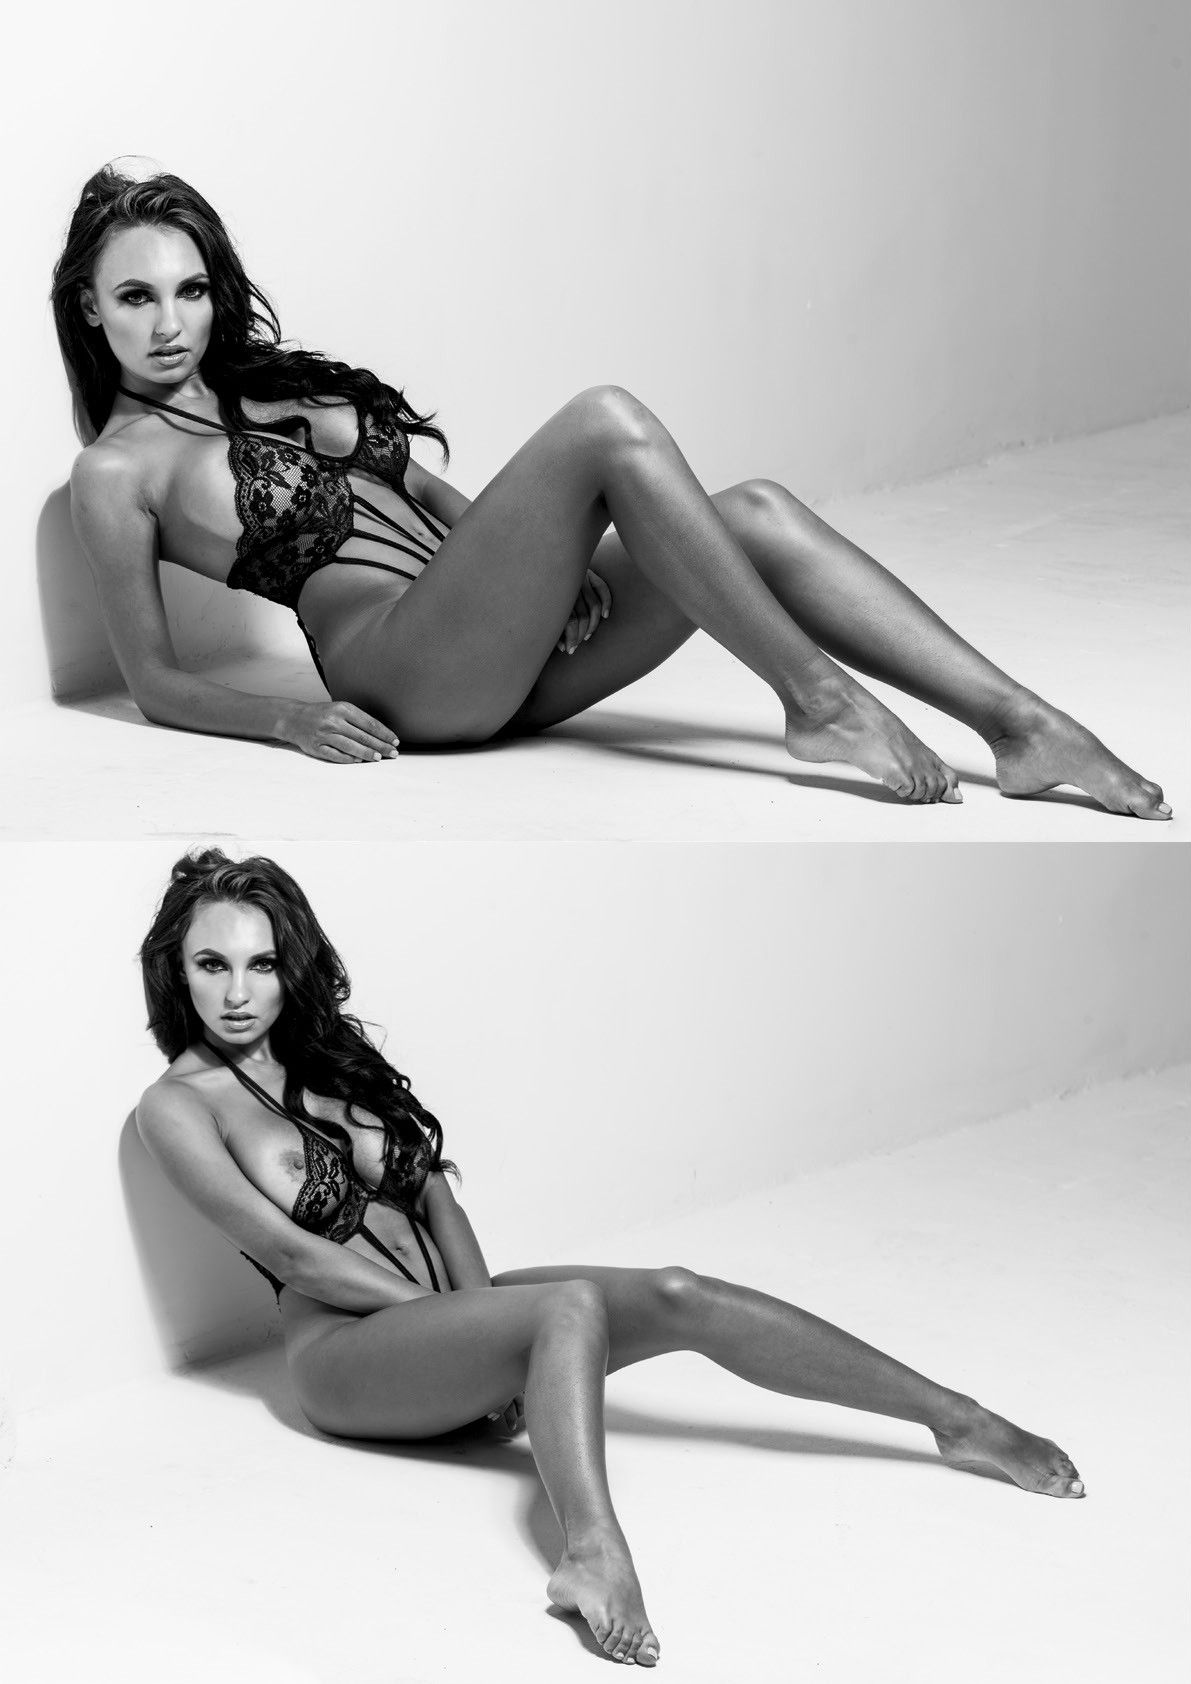 Hot Photoshoot Of Iryna I...